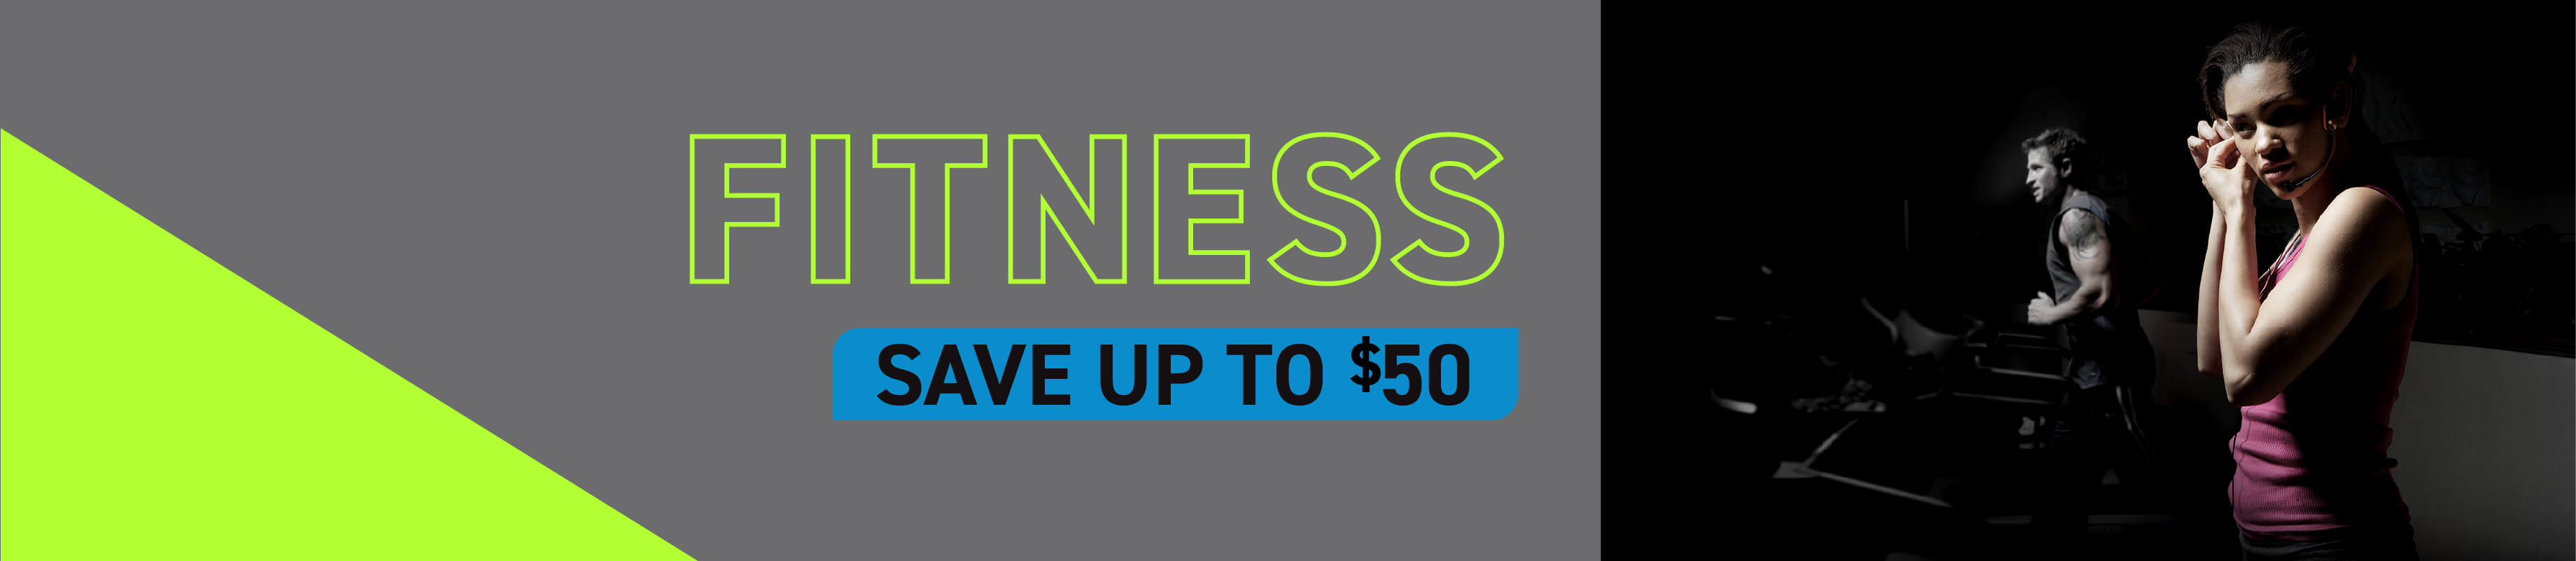 Fitness | Save up to $50